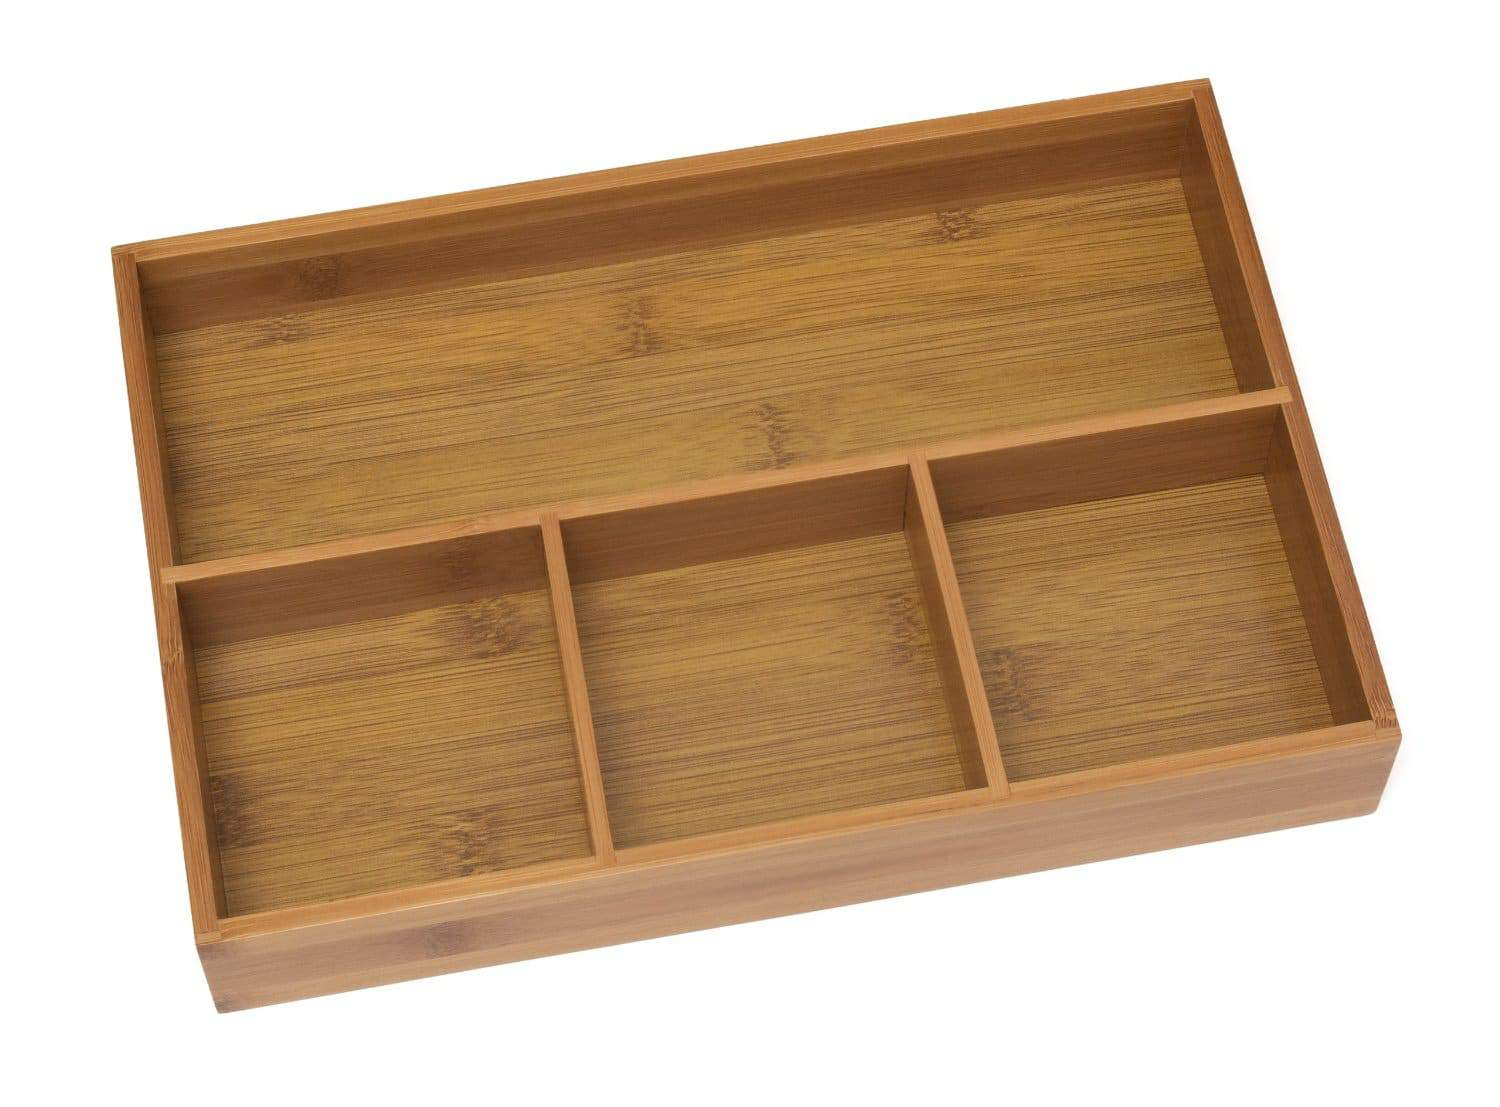 A bamboo tray used in vanity drawers helps with bathroom organization | chatfieldcourt.com